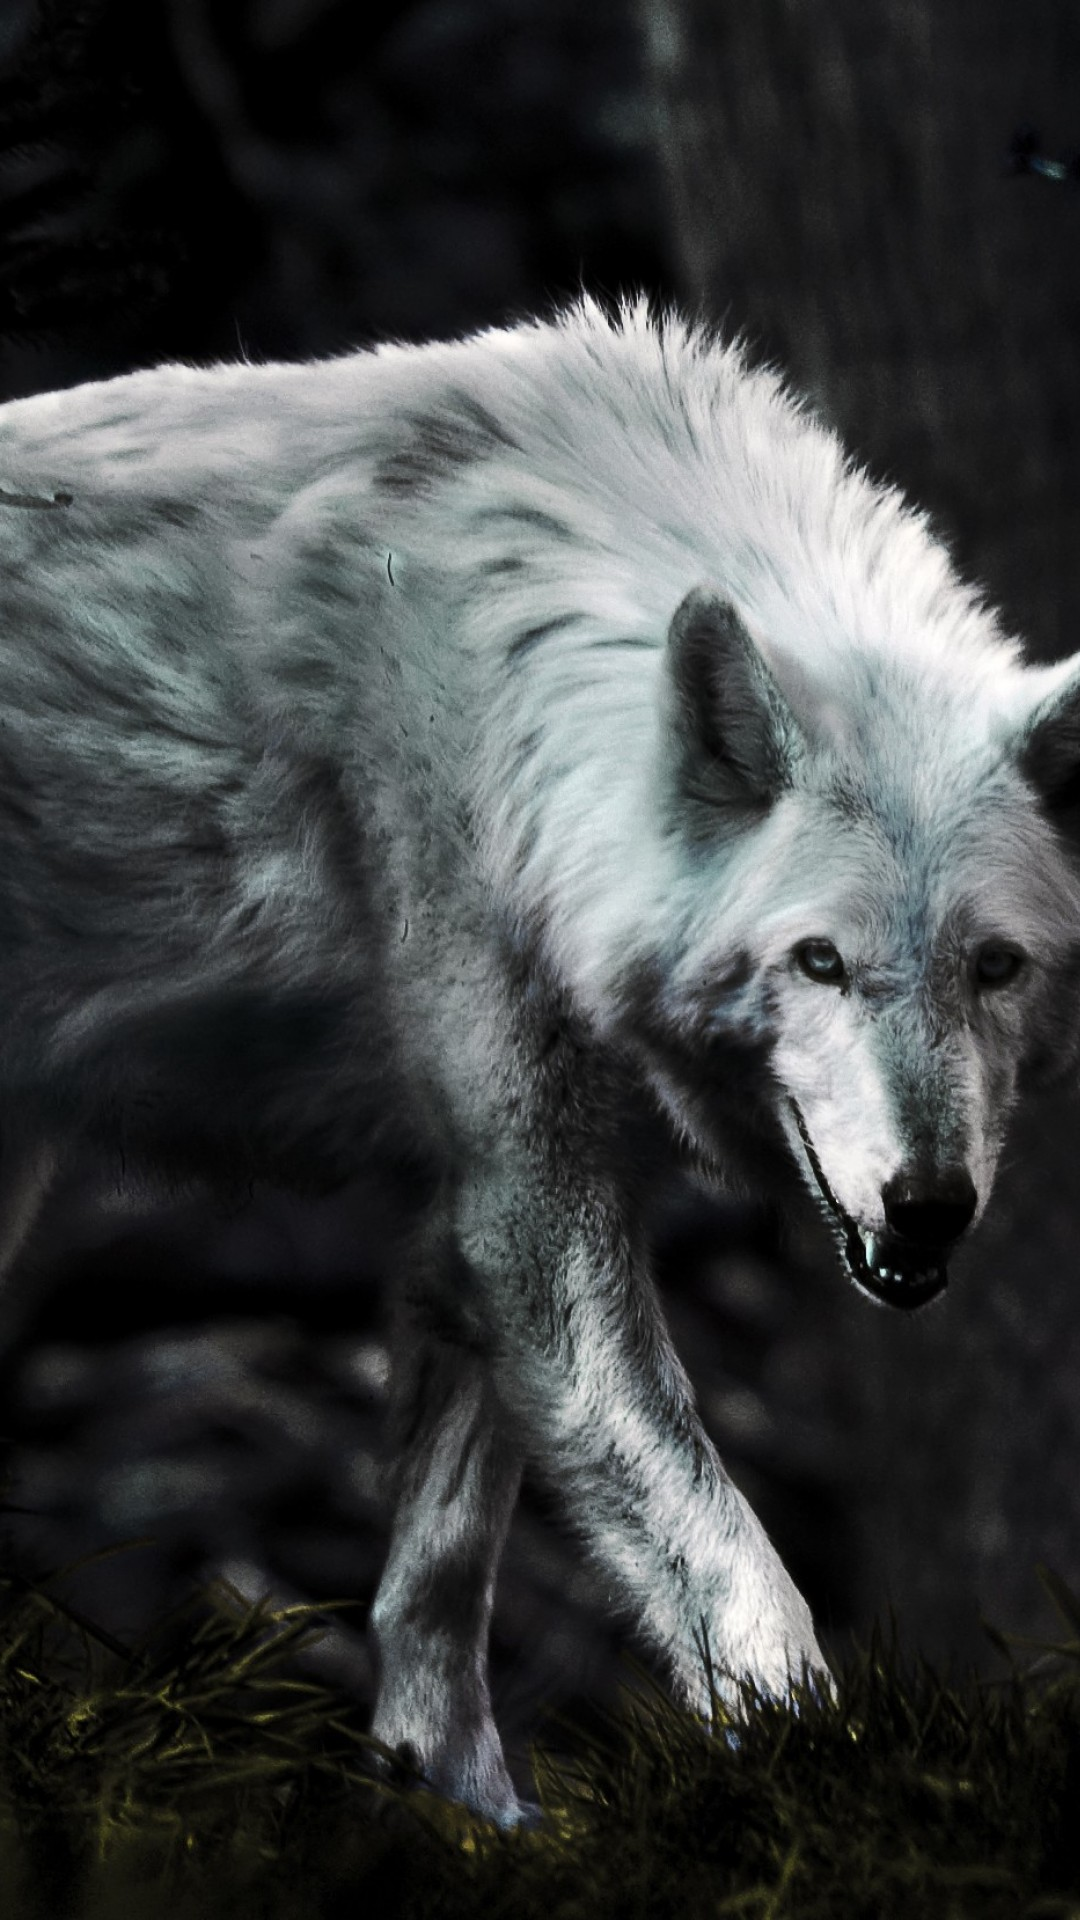 wallpaper loup fond - photo #39